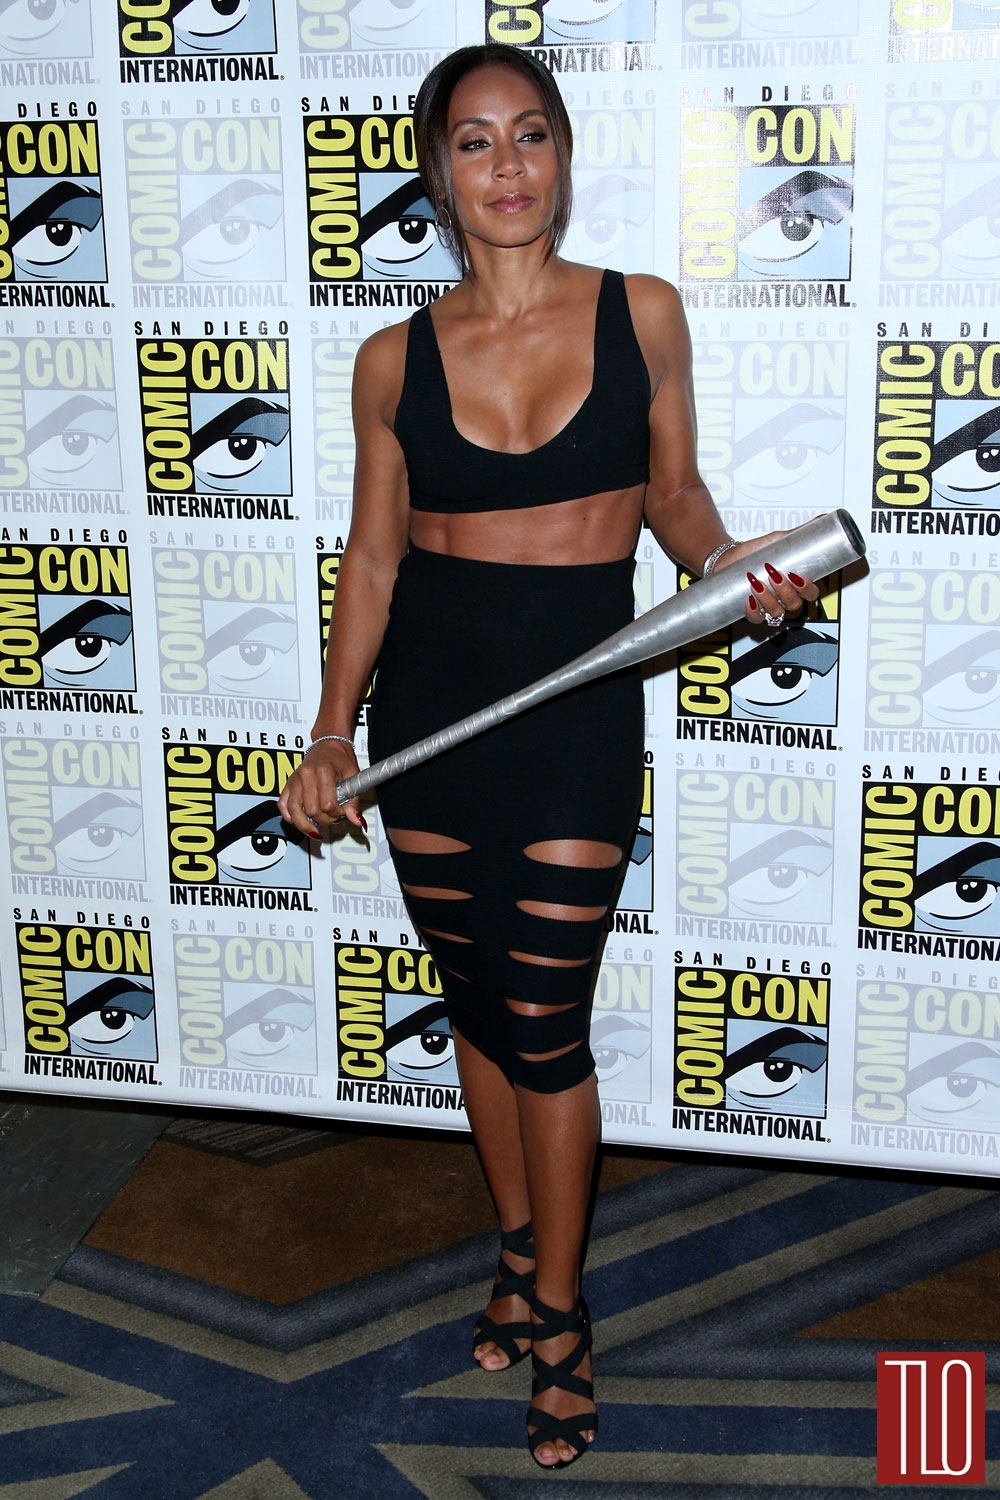 Jada-Pinkett-Smith-Cushnie-Ochs-Gotham-TV-Show-Comic-Con-2014-Red-Carpet-Tom-Lorenzo-Site-TLO (1)